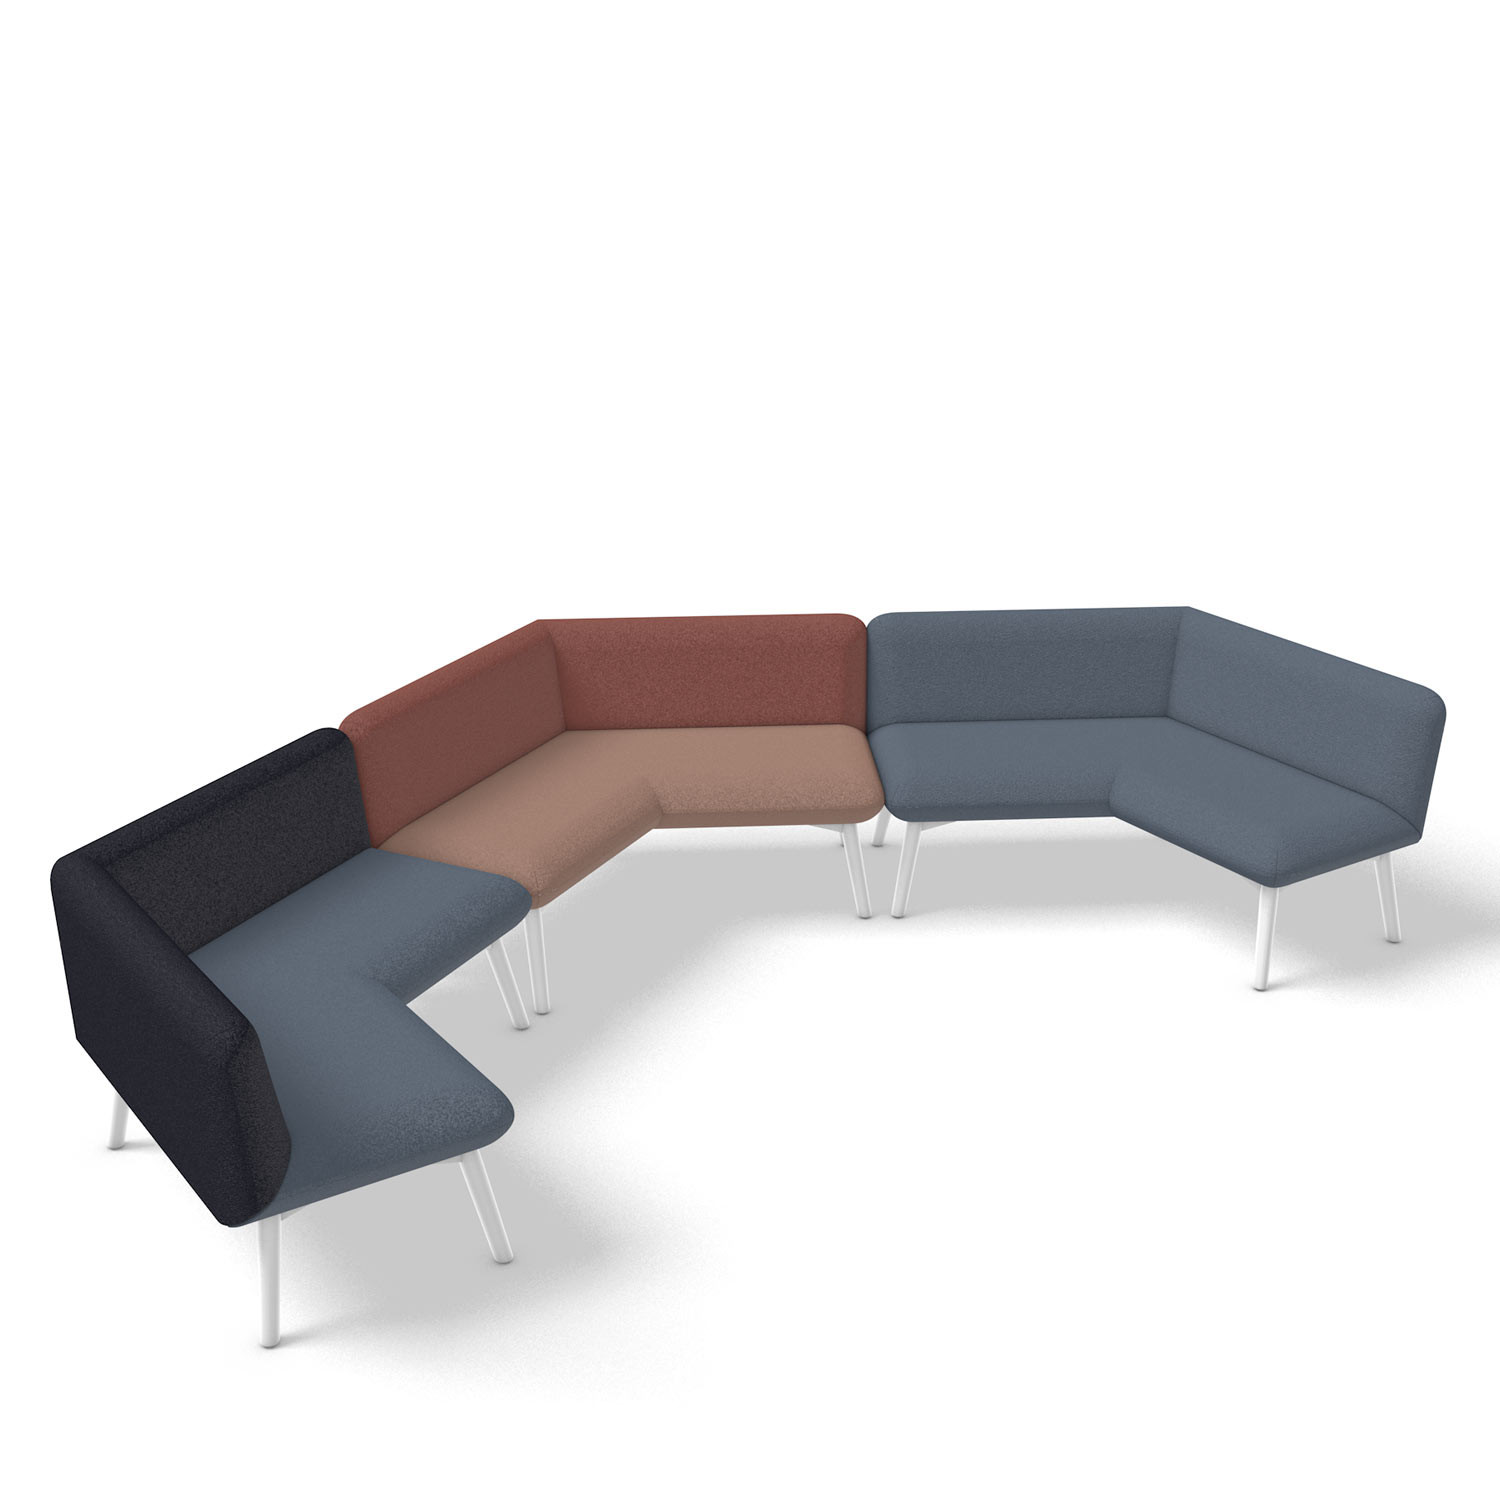 Myriad Modular Seating